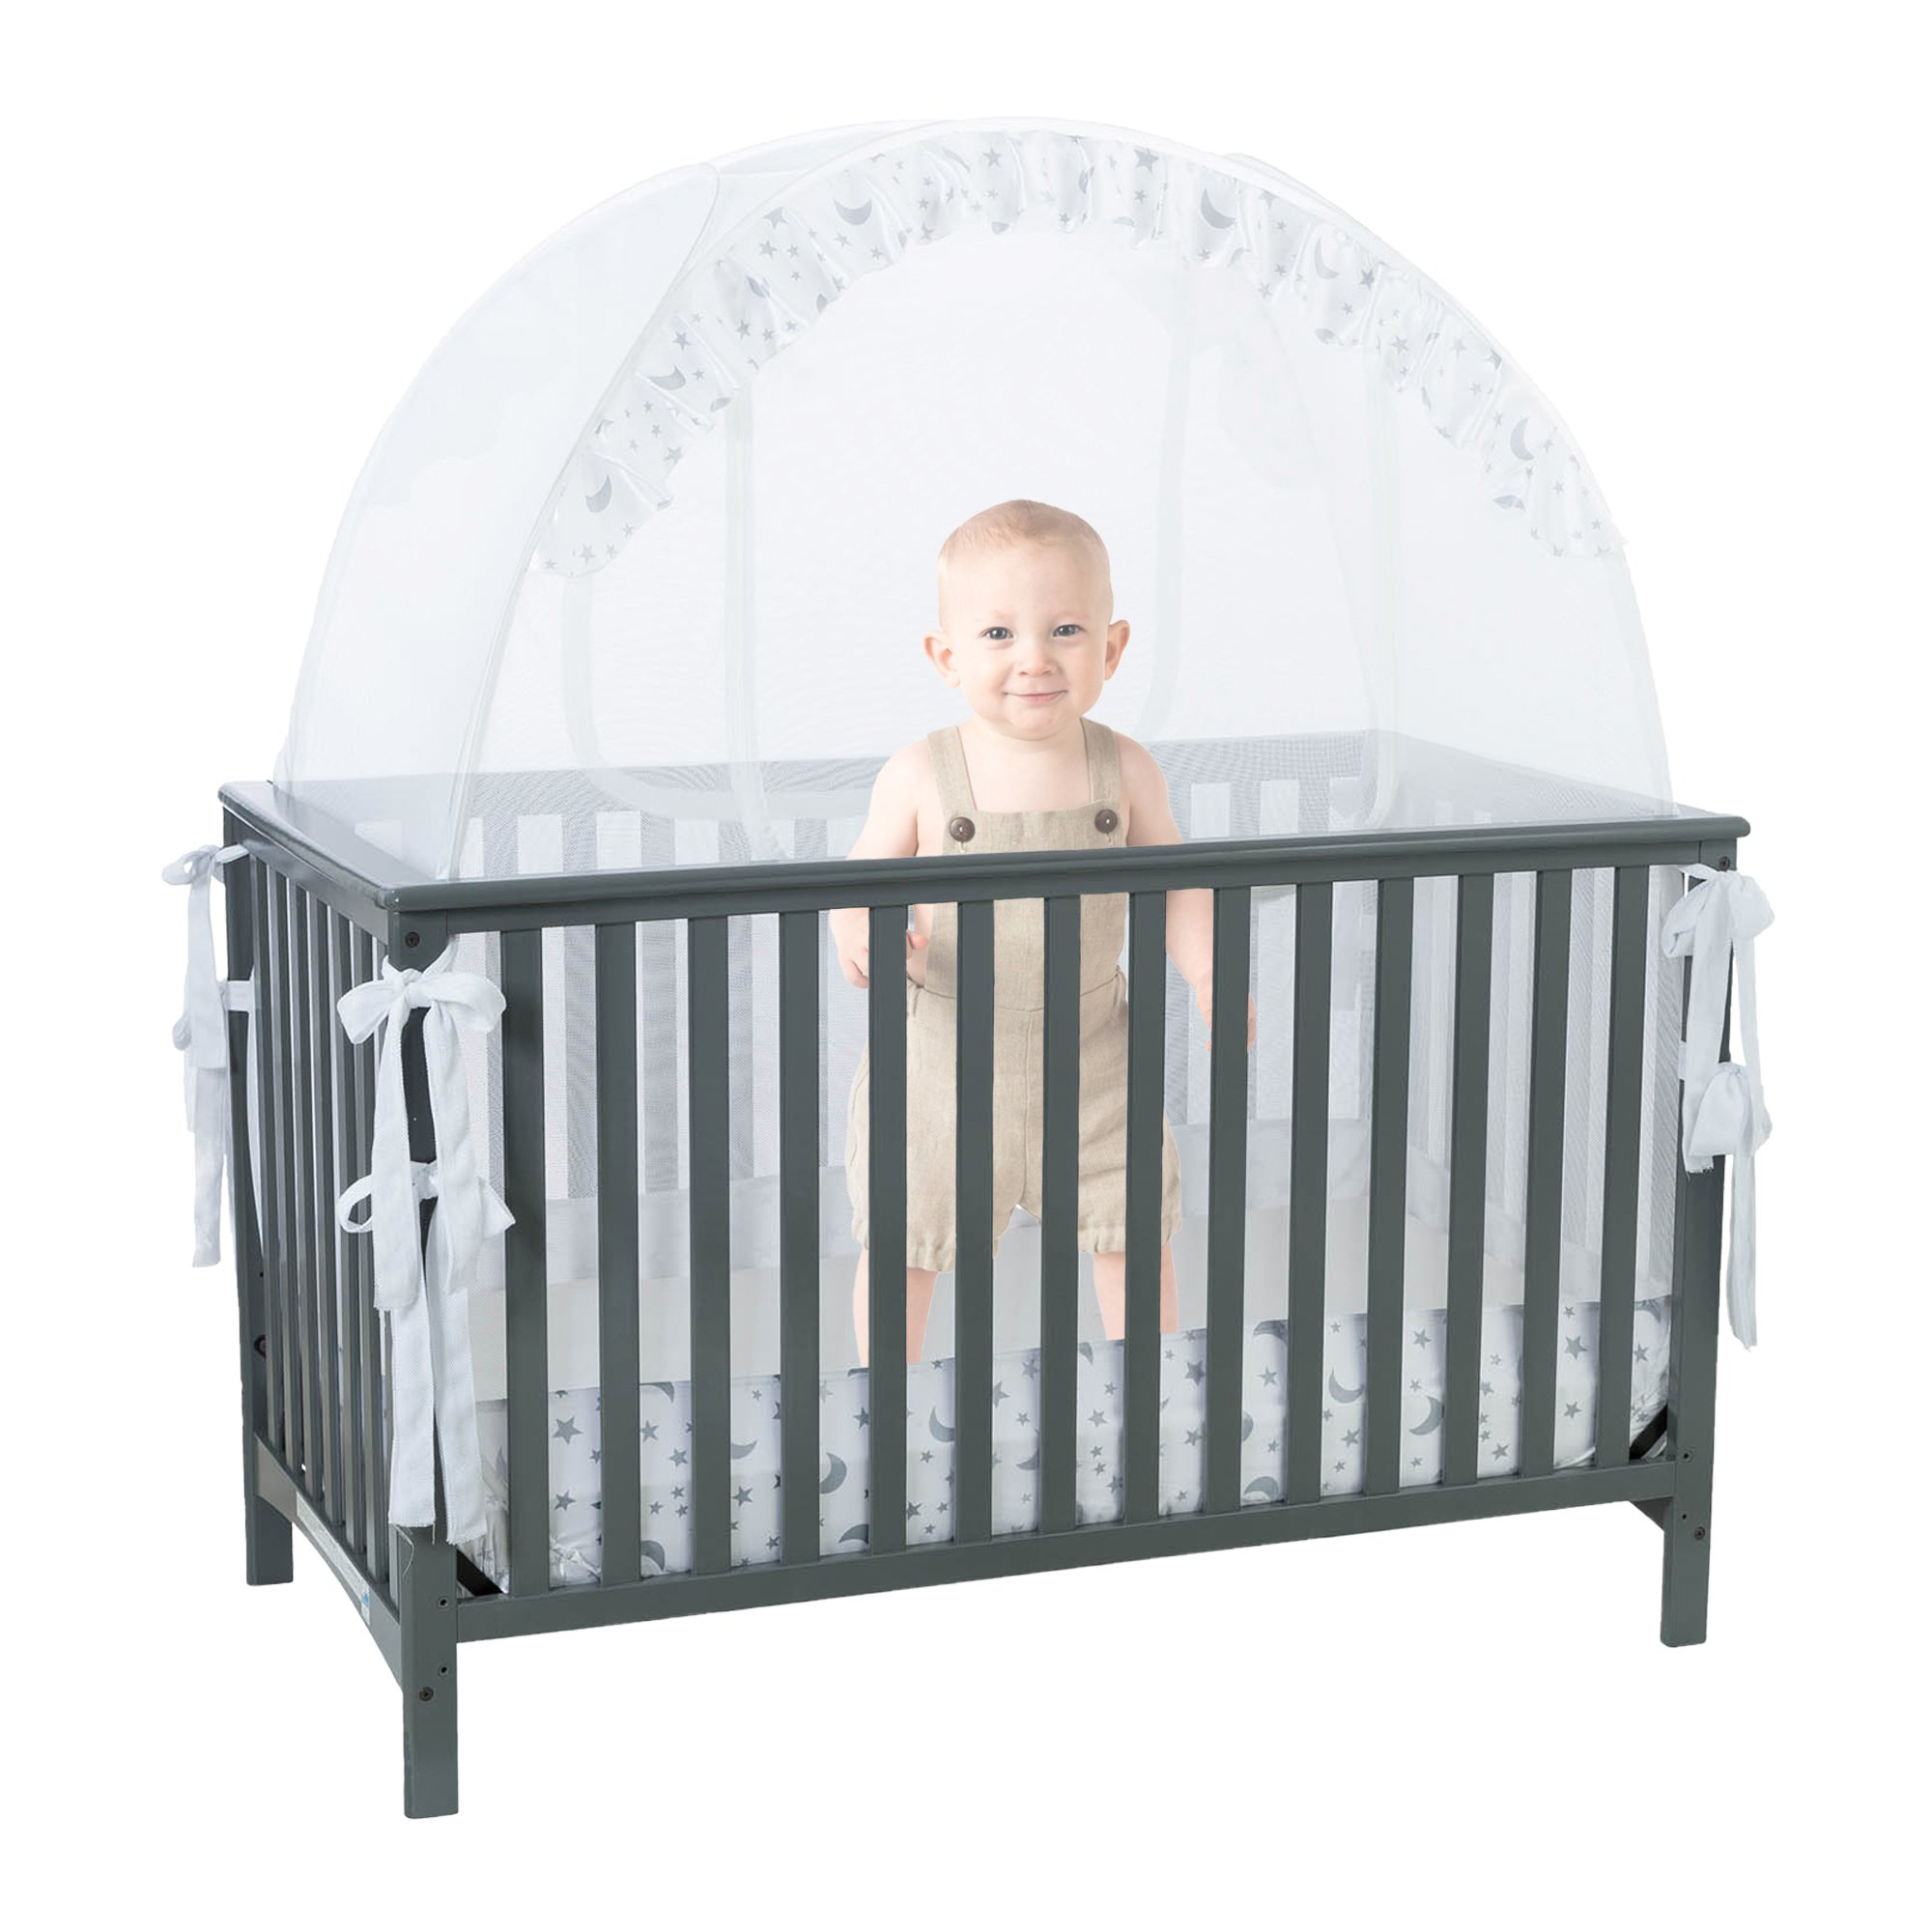 Baby Canopy For Crib: Amazon.com : Baby Crib Tent Safety Net Pop Up Canopy Cover